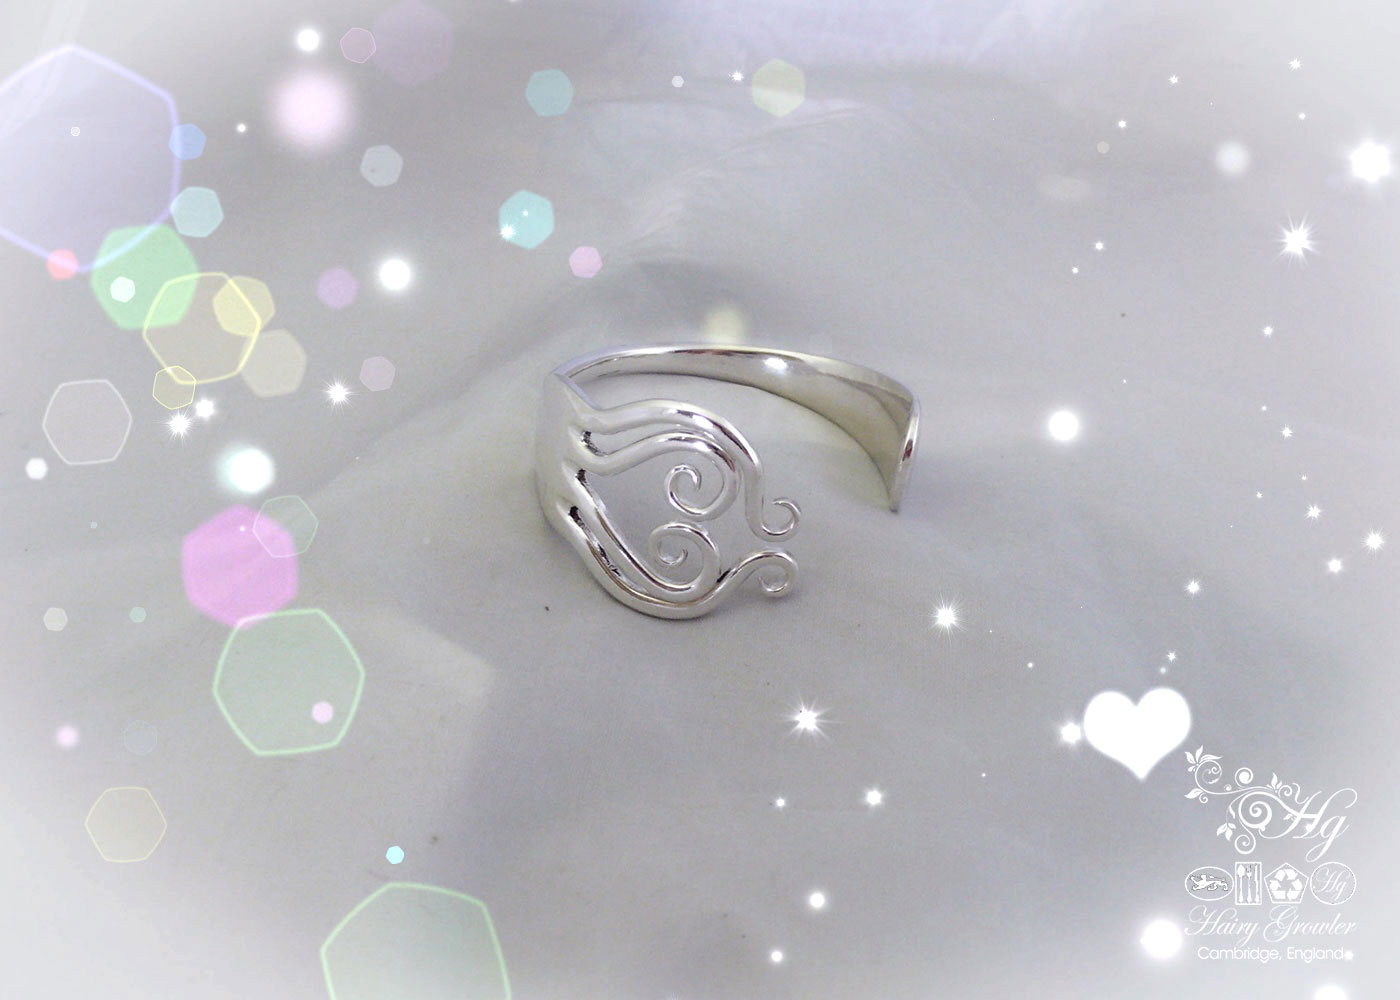 Handcrafted and repurposed true love heart bangle